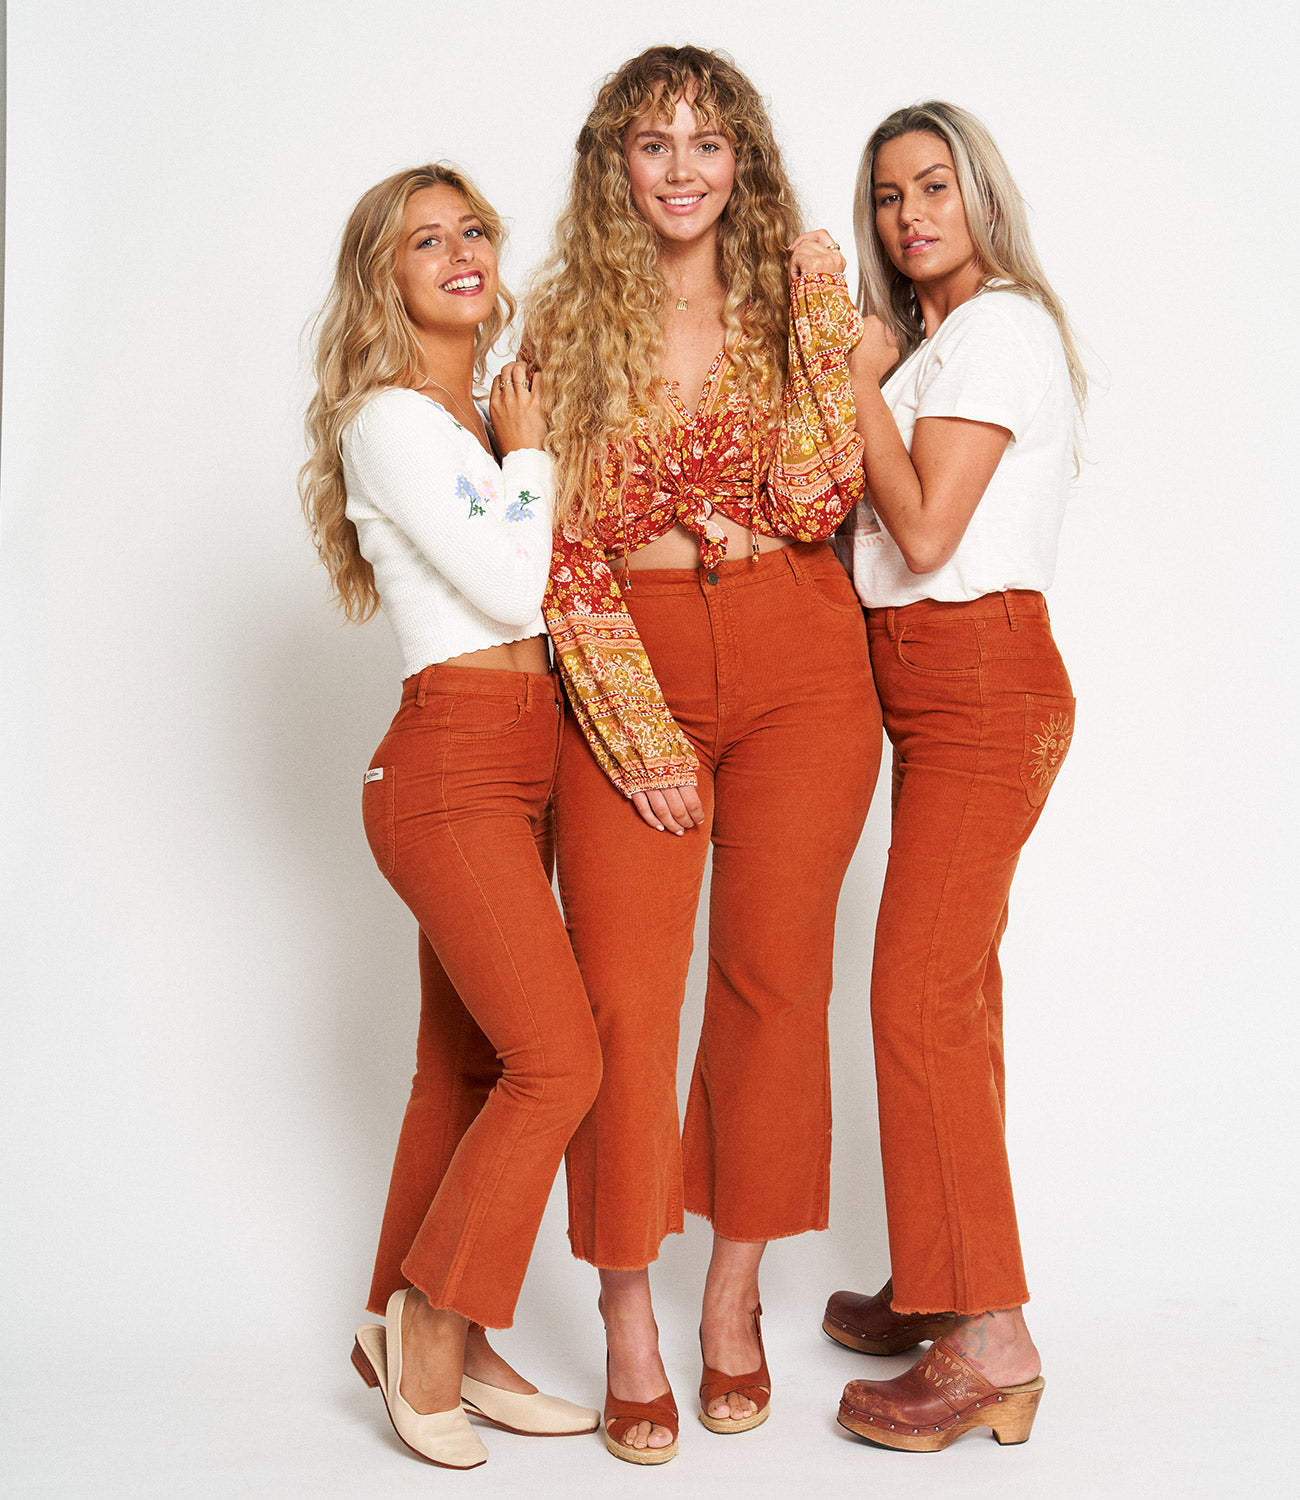 Arnhem Savannah Cord Jeans in Copper perfect for every body shape and size